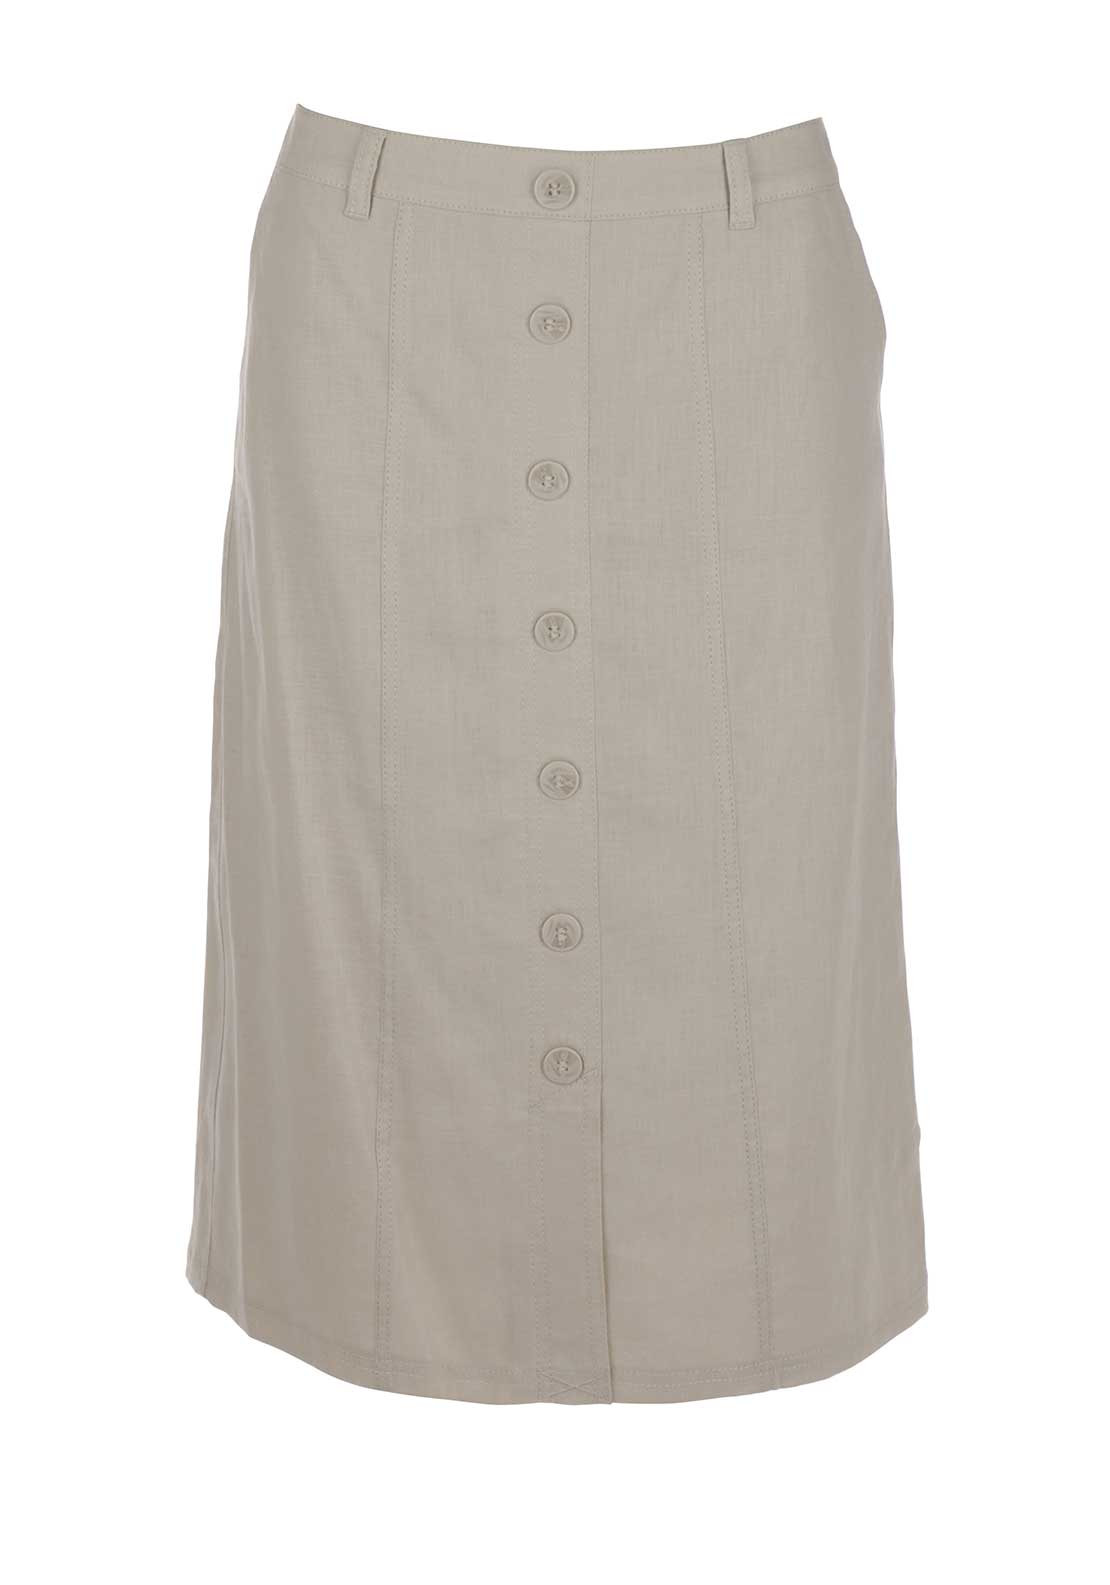 Gerry Weber Straight Linen Midi Skirt, Beige